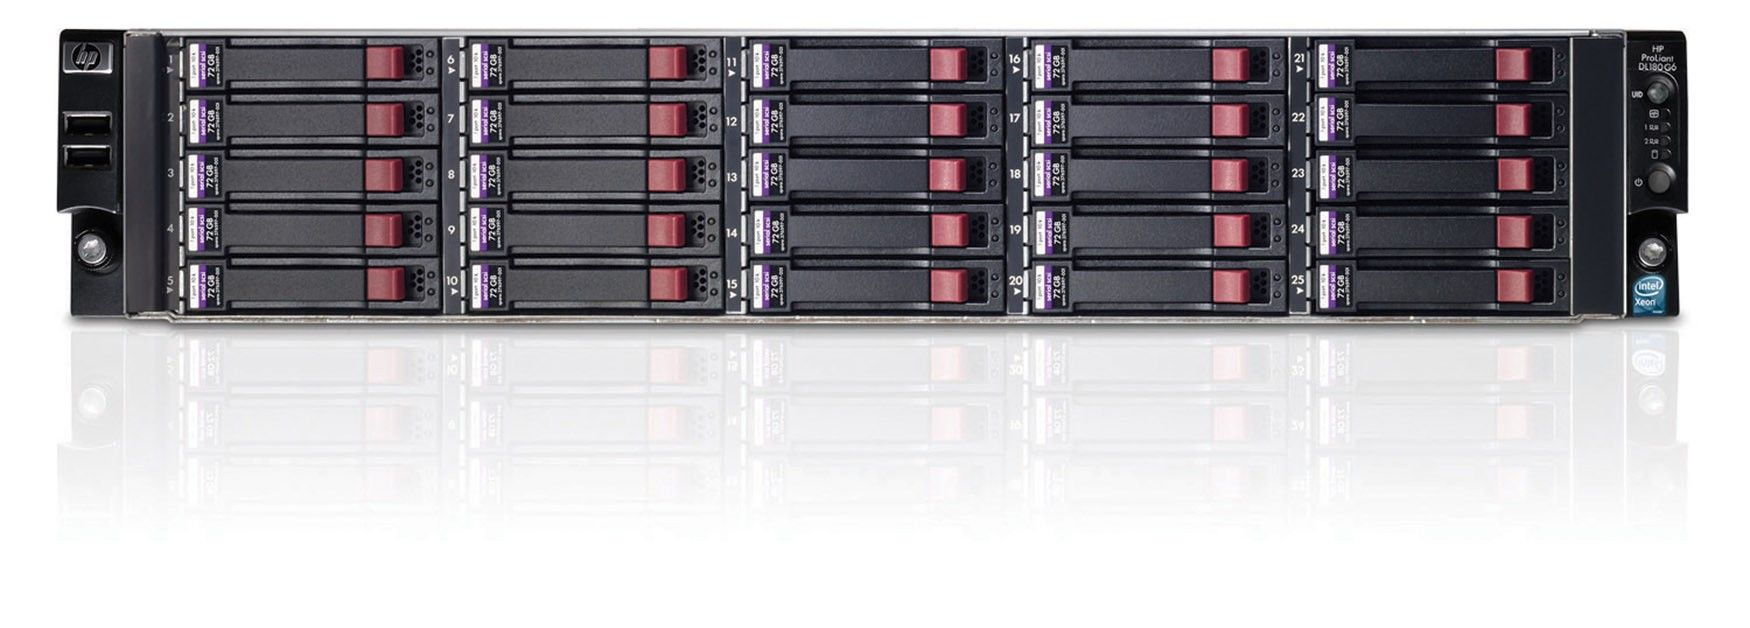 Сервер HP ProLiant DL180 G6 - корпус Rackmount 2U, 25 отсеков SFF 2.5